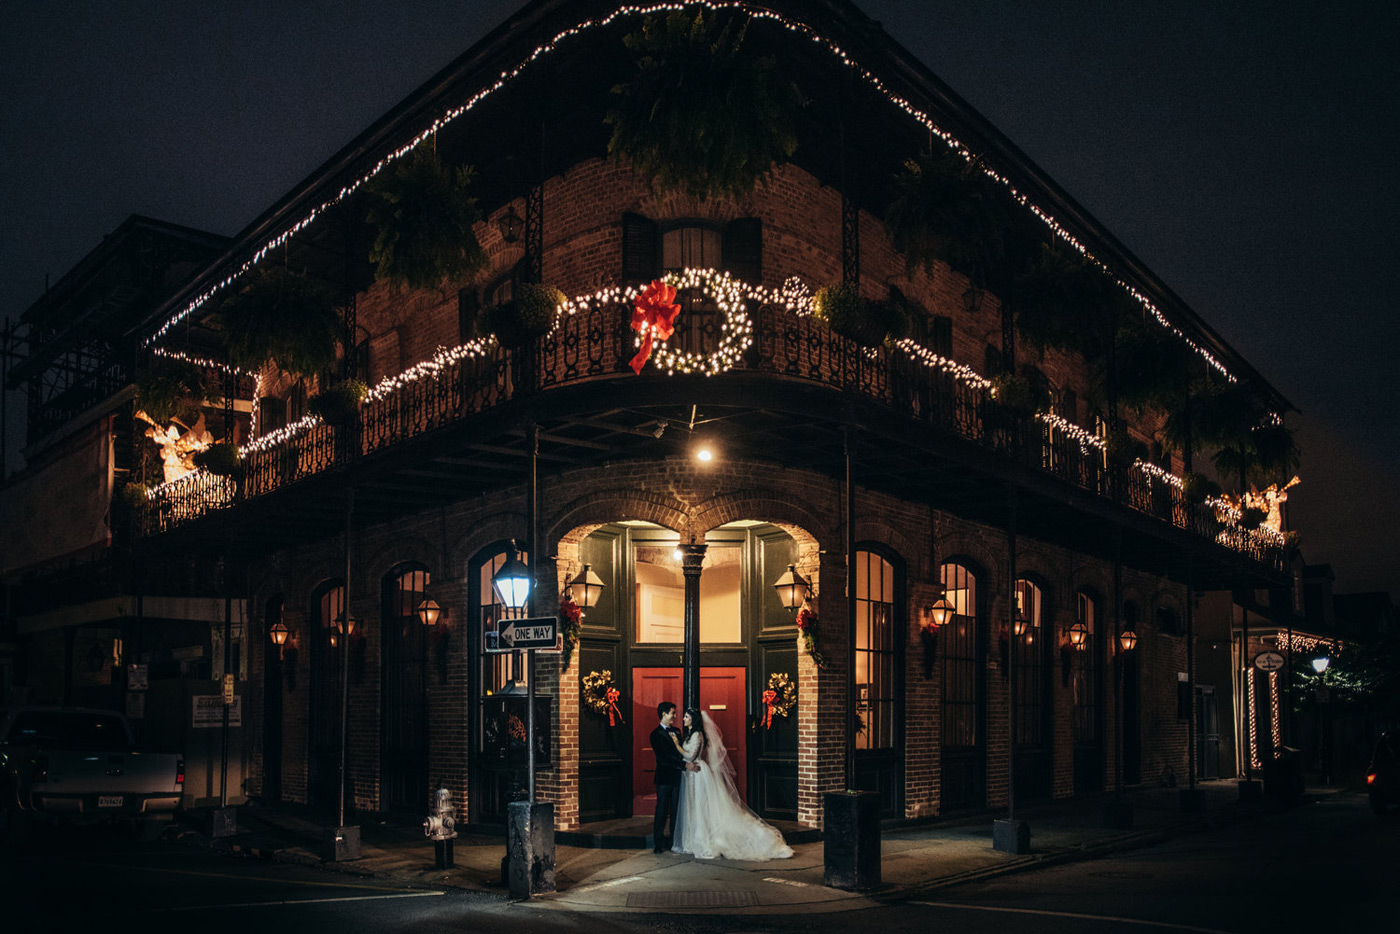 Bride and Groom pose in from of a traditional New Orleans building with Christmas lights around the balcony